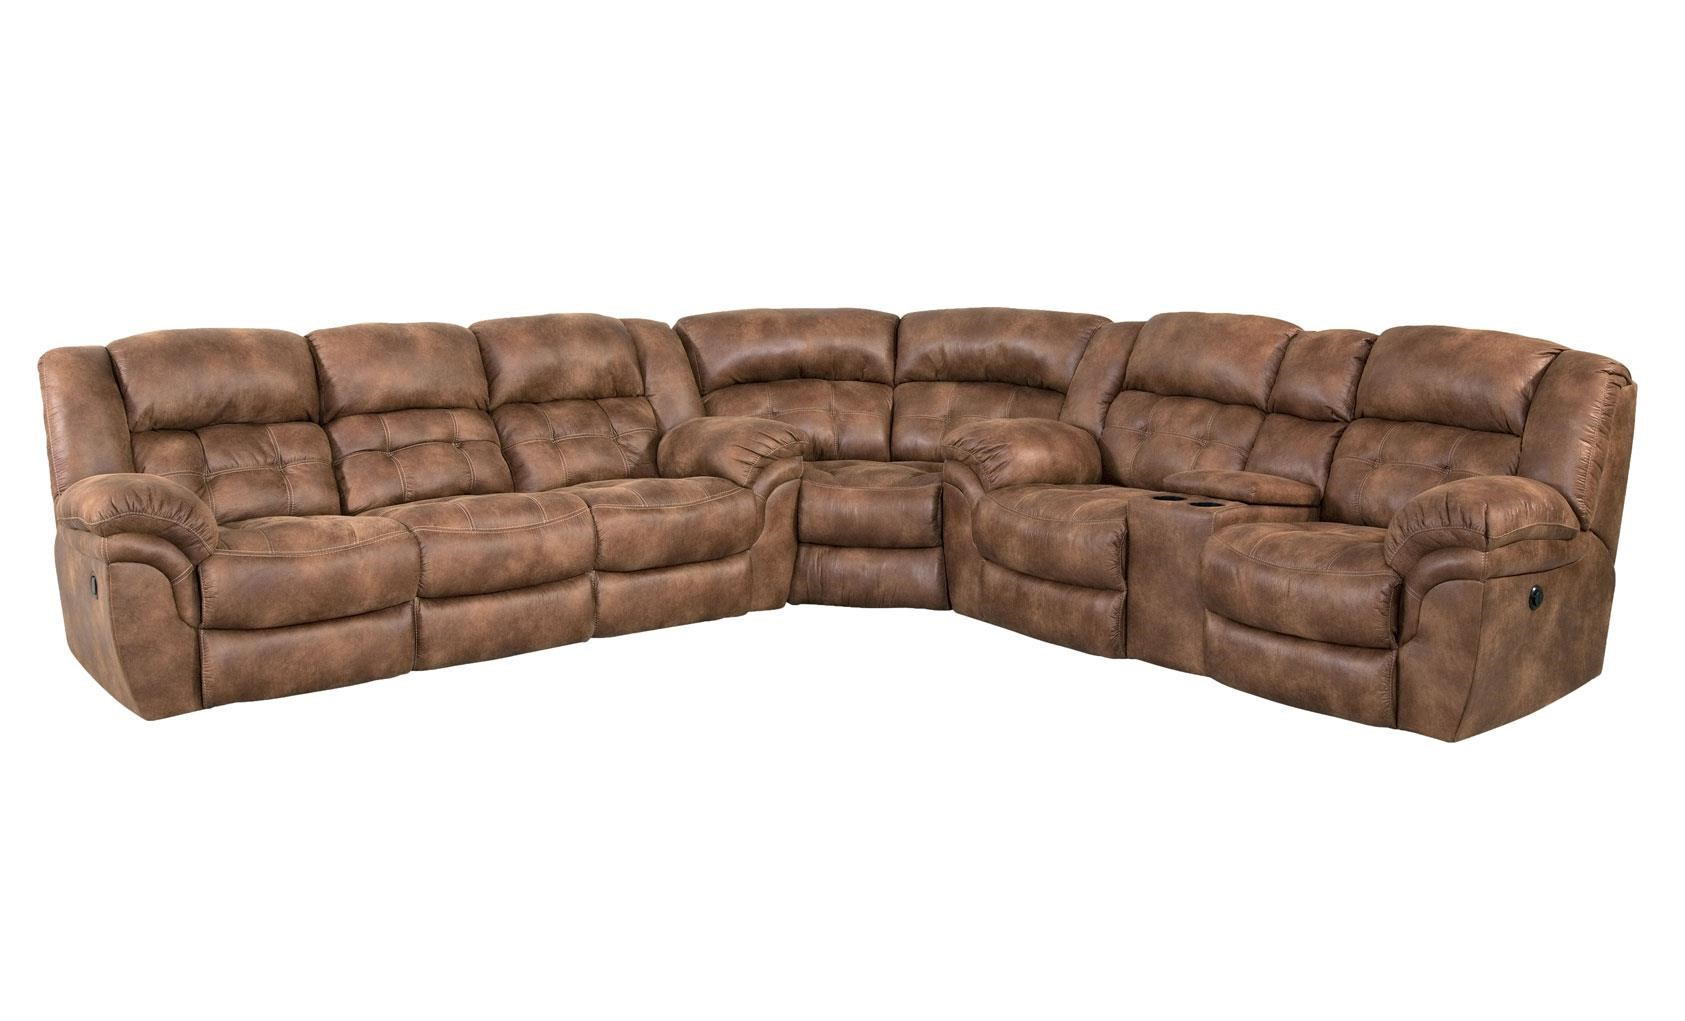 HomeStretch Padre HOMS-GRP-129-SECTIONAL Padre Almond Reclining Sectional Sofa  sc 1 st  Great American Home Store & HomeStretch Padre Padre Almond Reclining Sectional Sofa - Great ... islam-shia.org